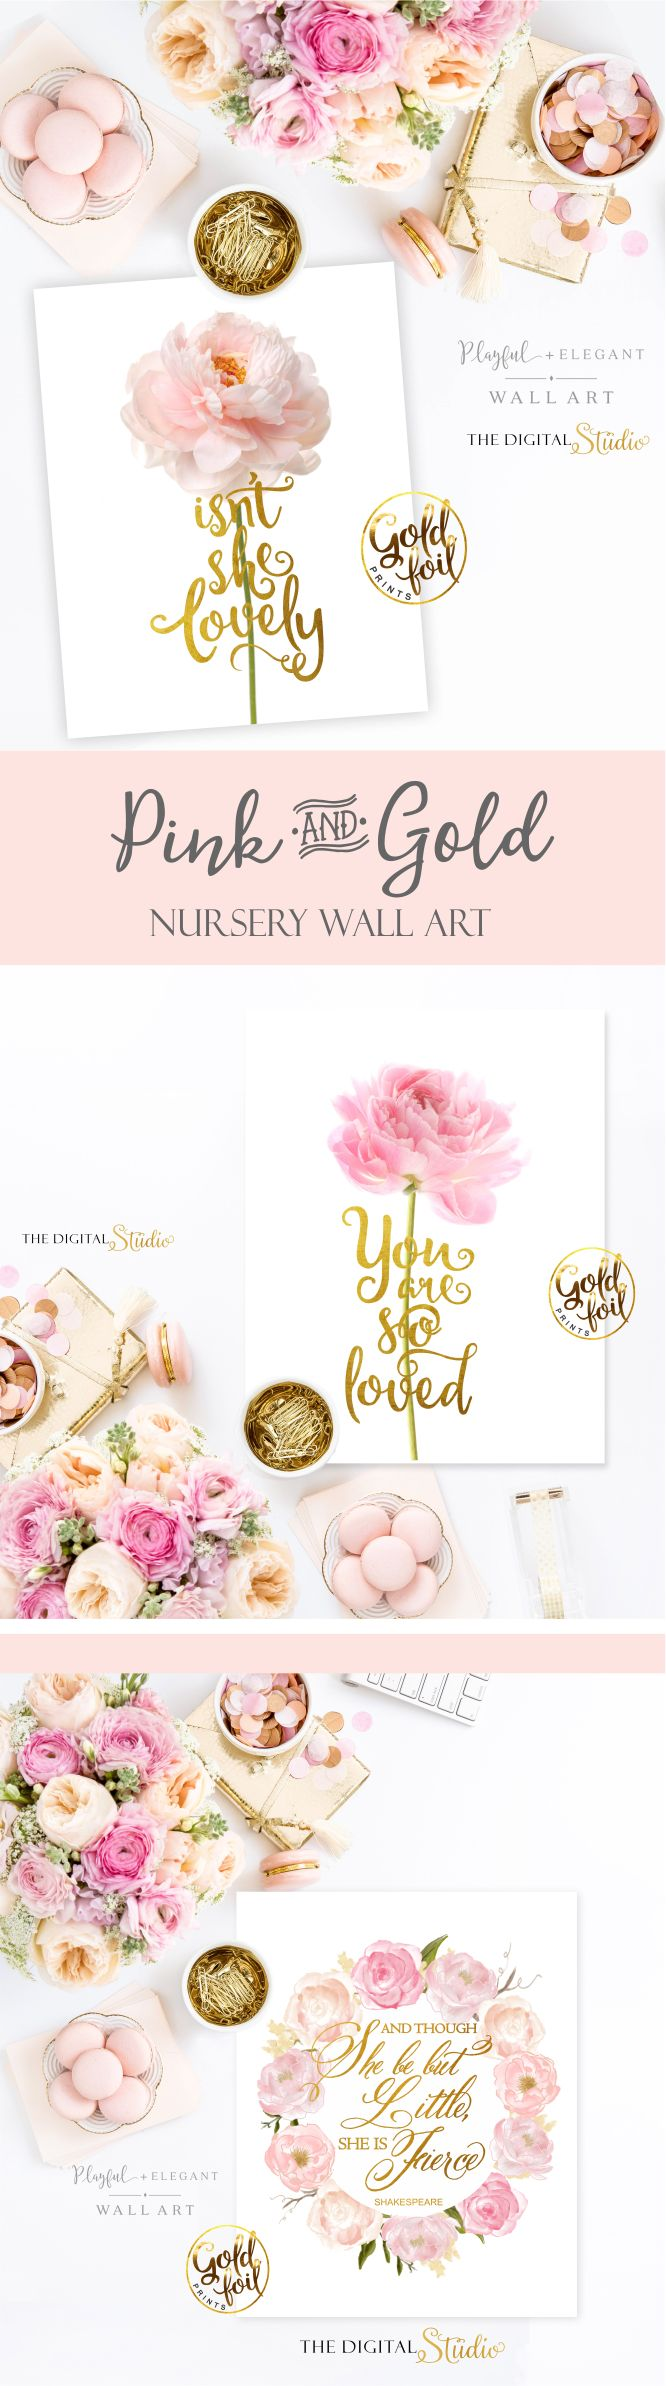 Pink and Gold Nursery Wall Art. I love the shine of the gold foil lettering combined with the soft pink tone of the flowers. These prints will be a wonderful addition to your wall gallery.